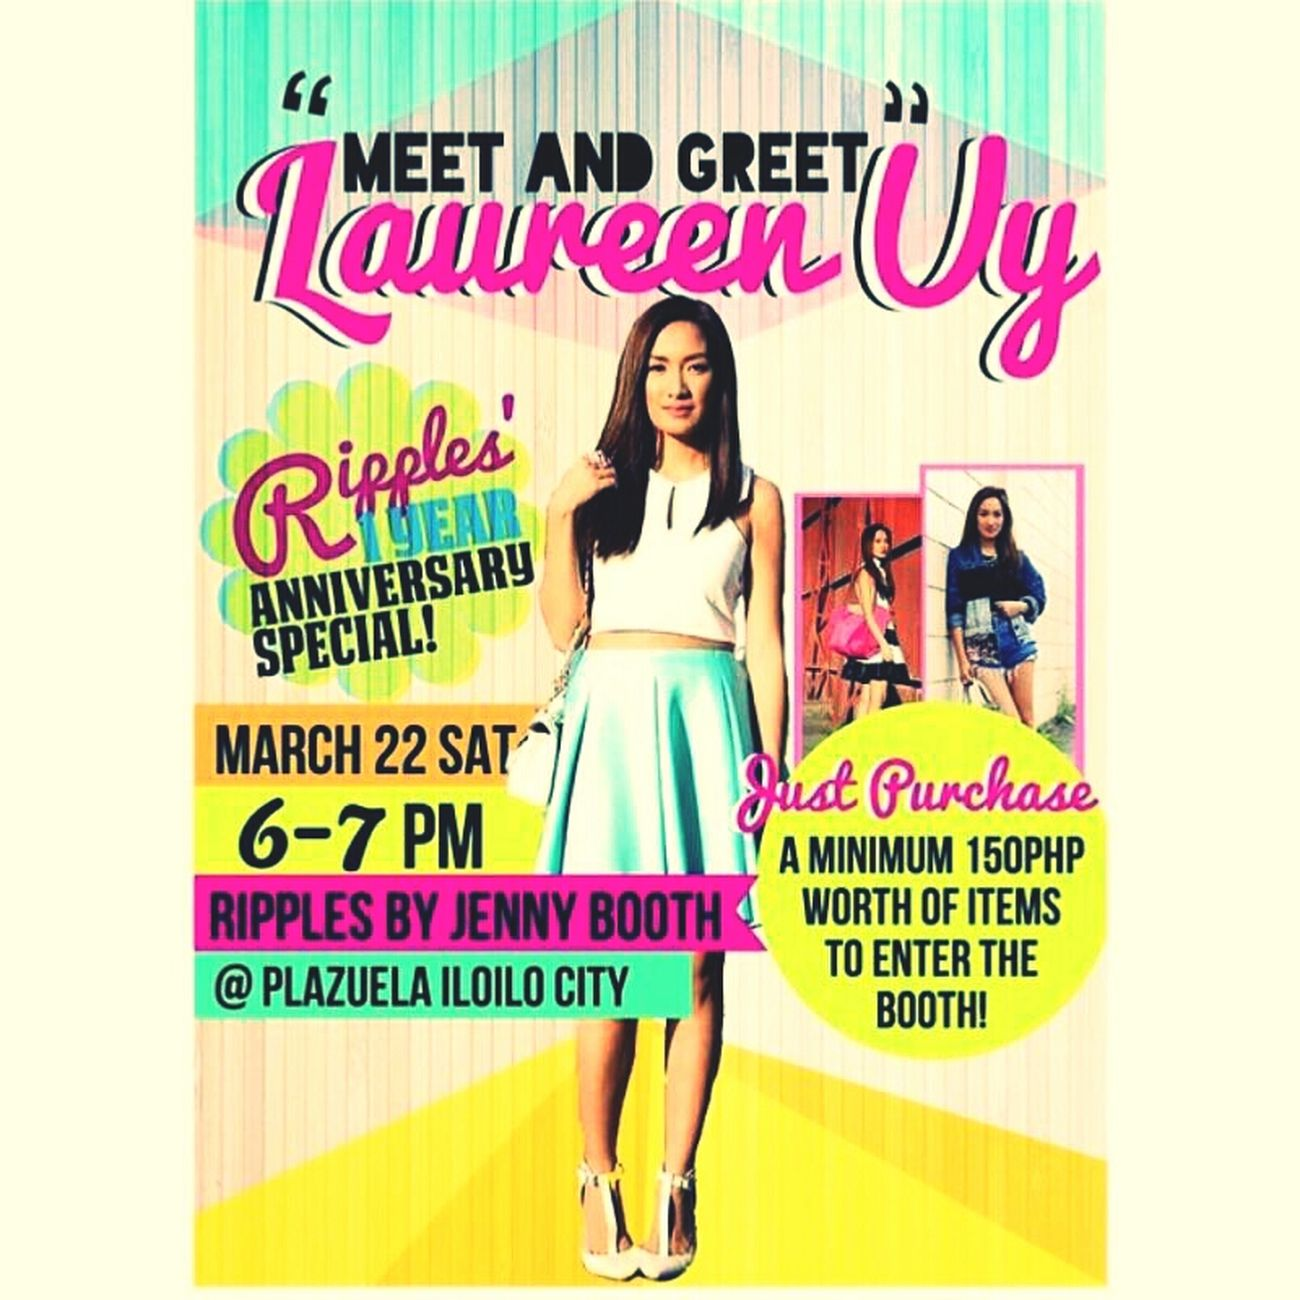 Laureen Uy in Plazuela Iloilo City on March 22, 2014 *_*